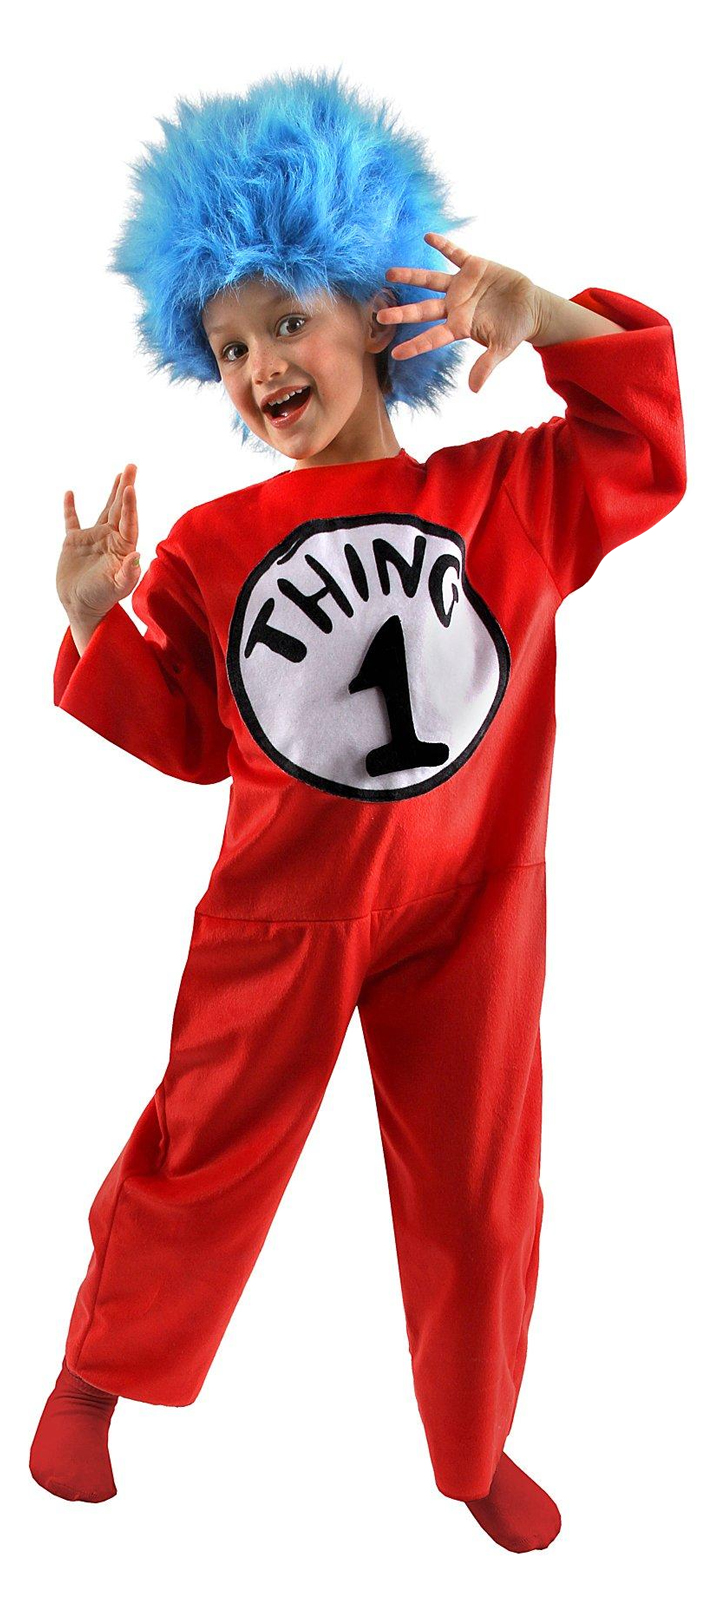 Dr. Seuss The Cat in the Hat – Thing 1 and Thing 2 Child Costume